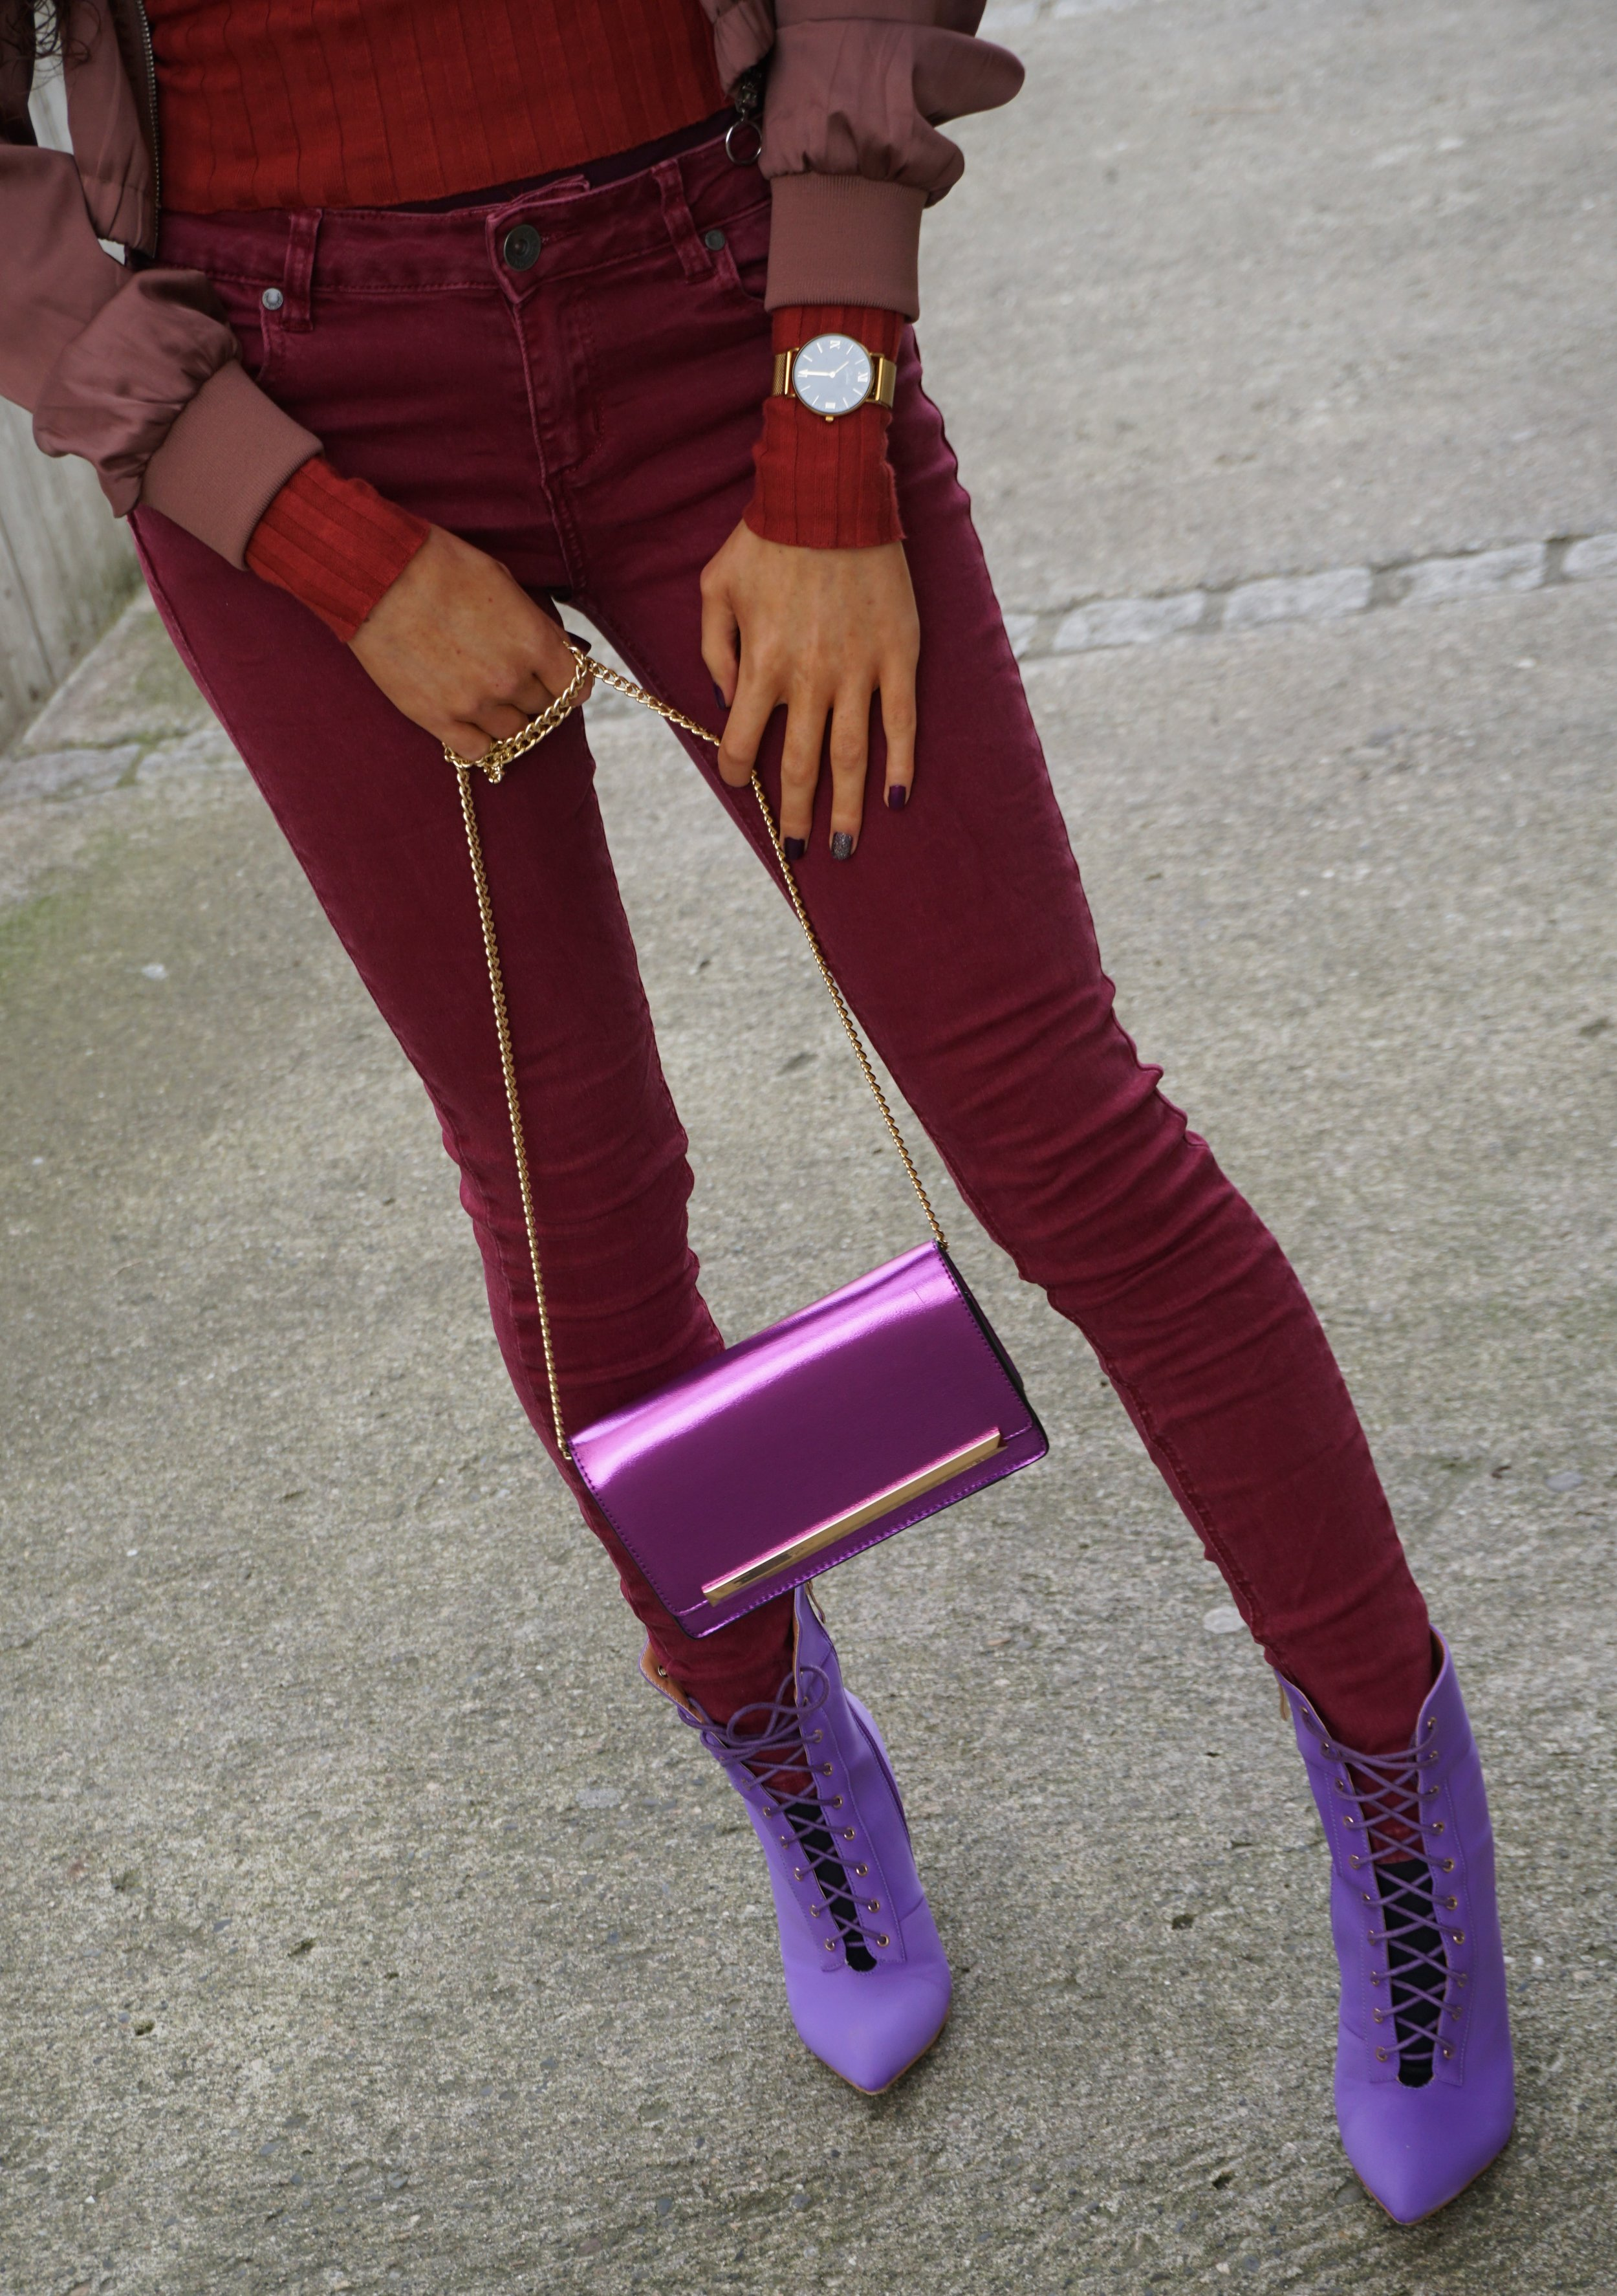 Ego official Laces Purple boots - Burgundy style